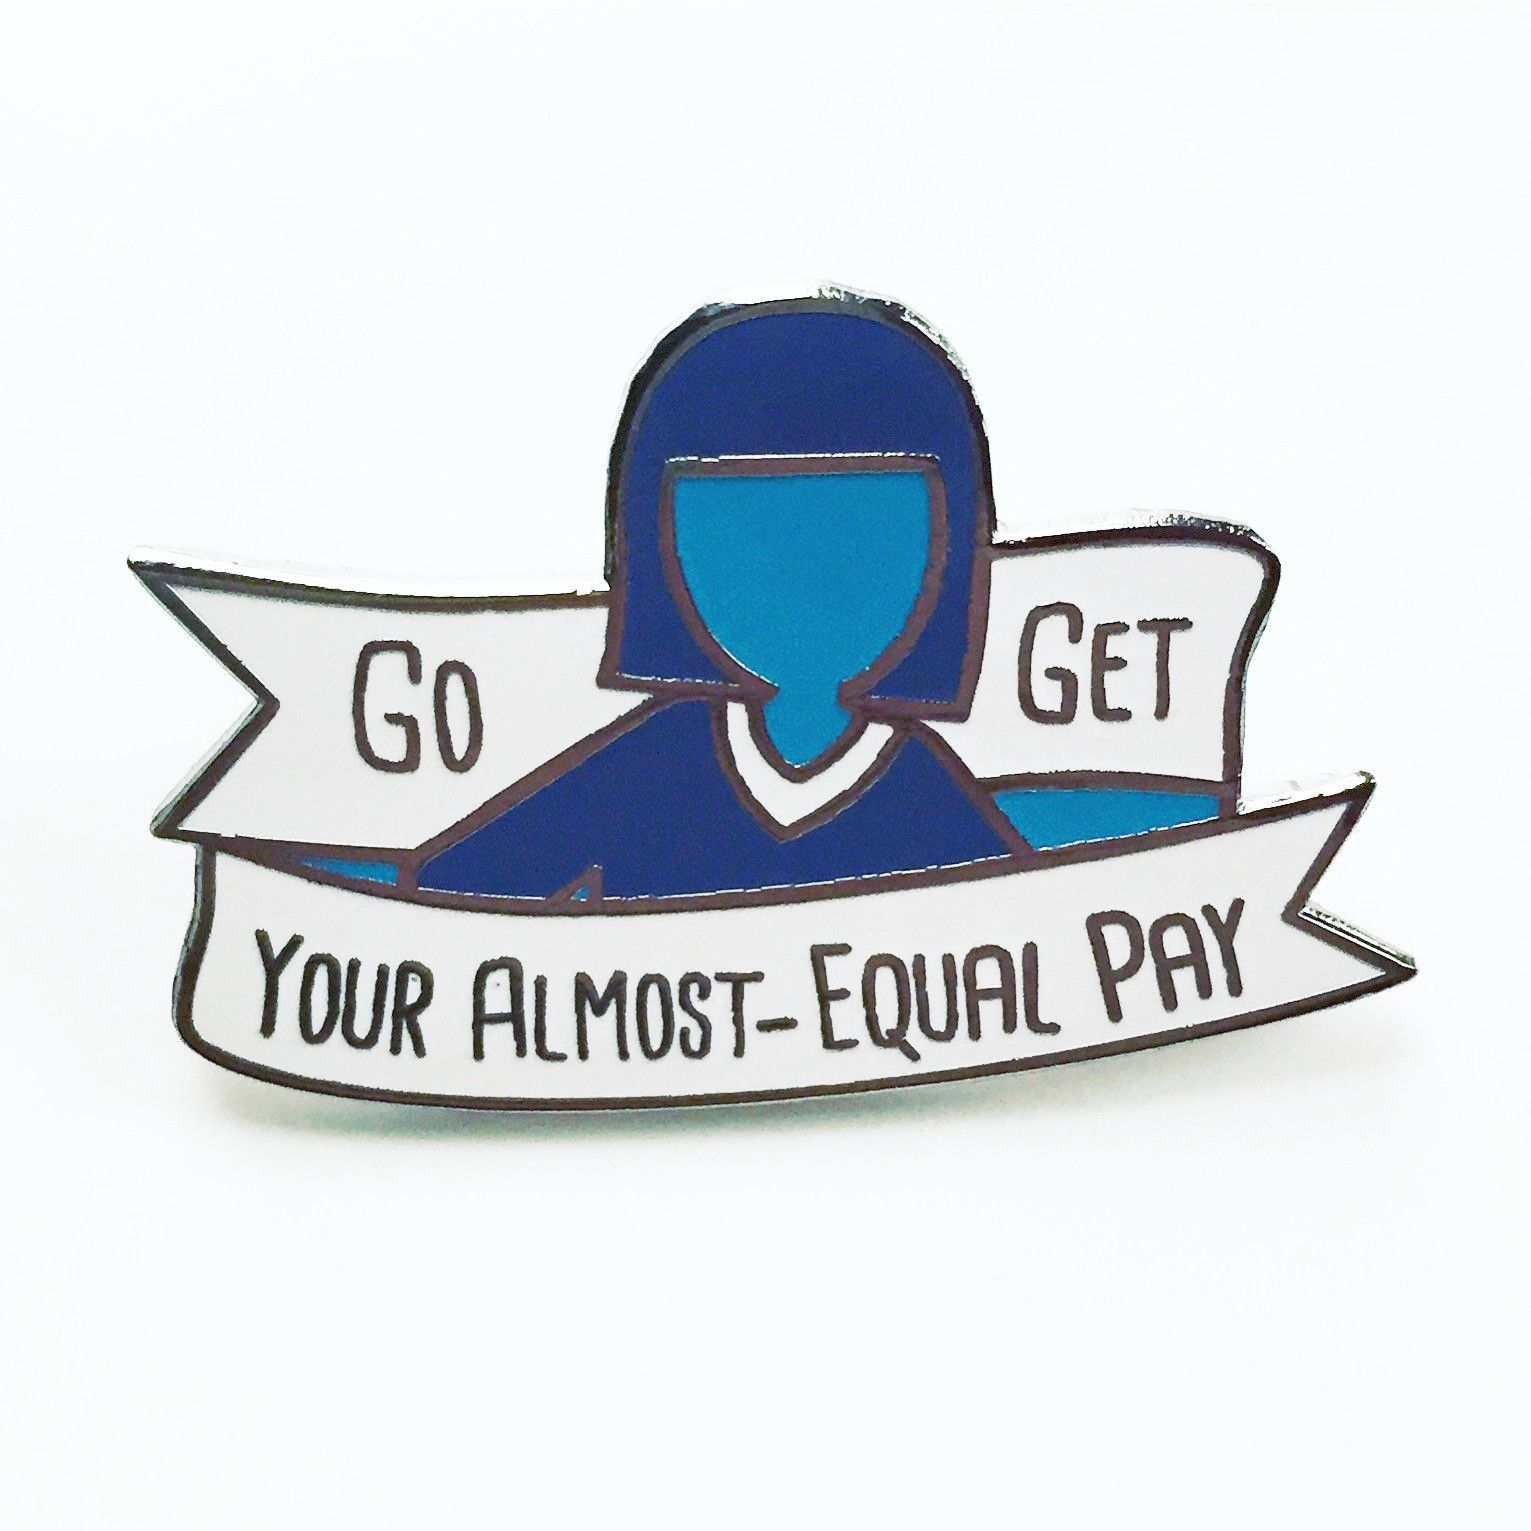 Go Get Your Almost Equal Pay Enamel Pin Clothes Bag And Ships